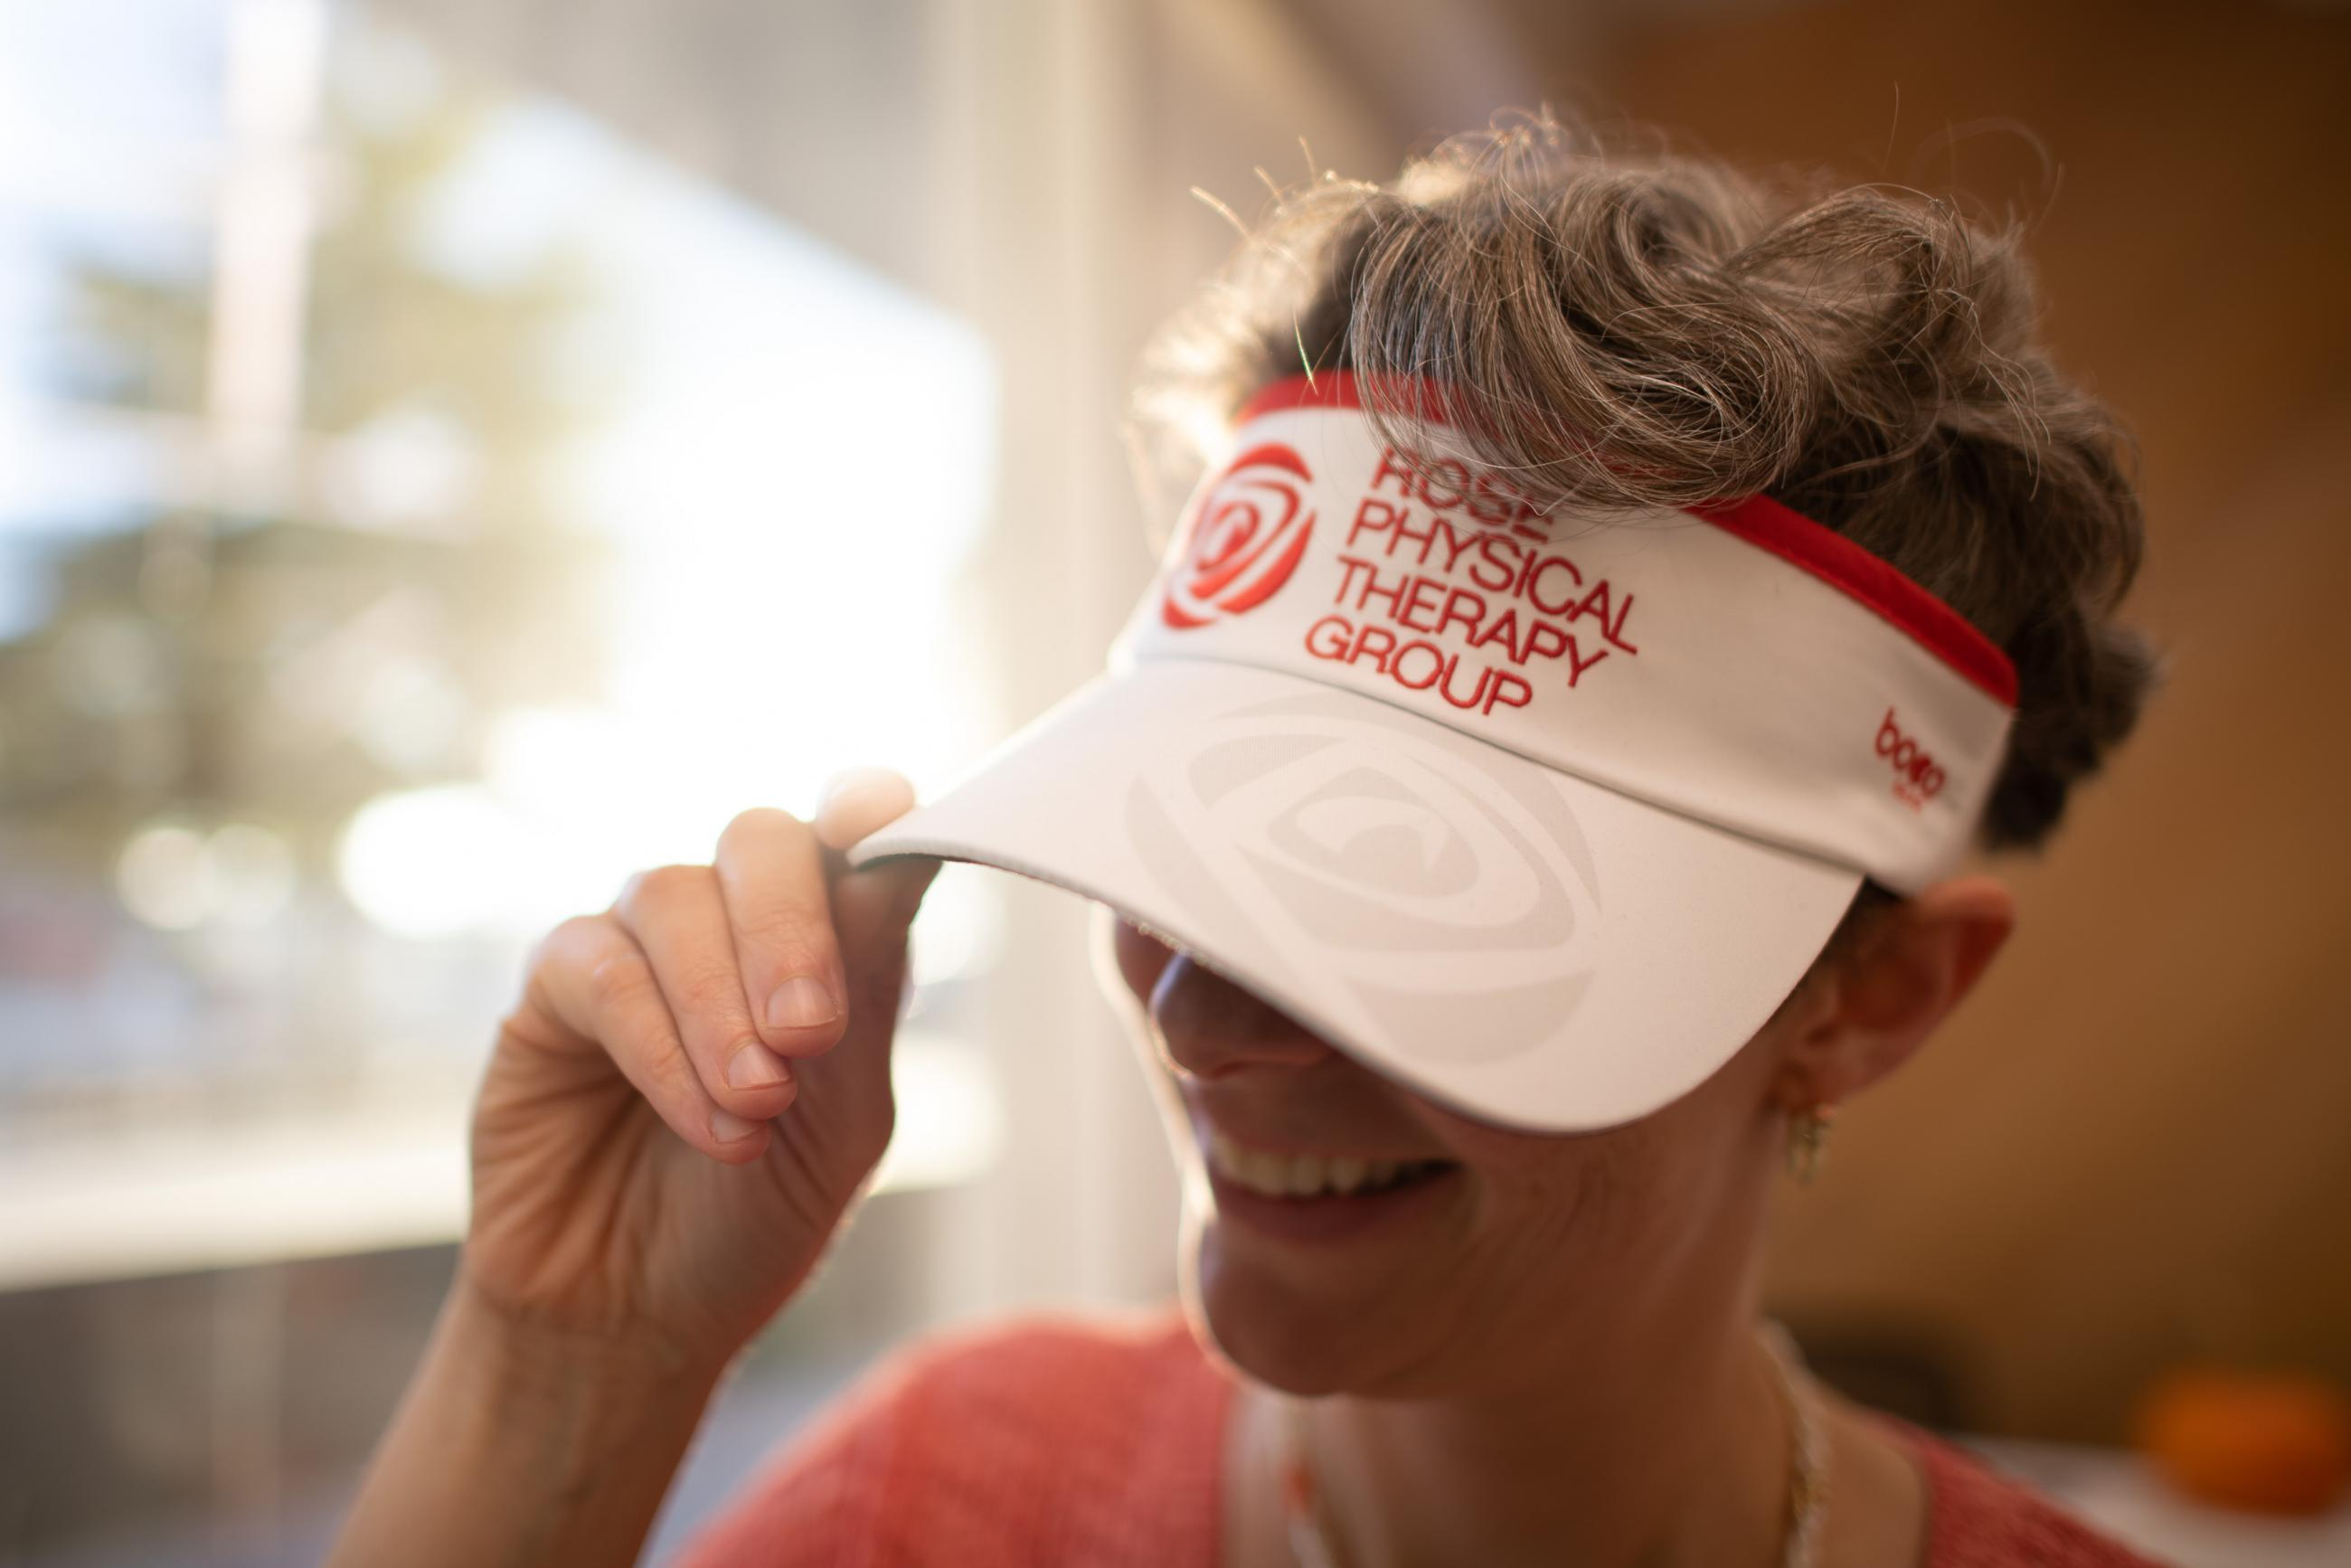 rose physical therapy visor